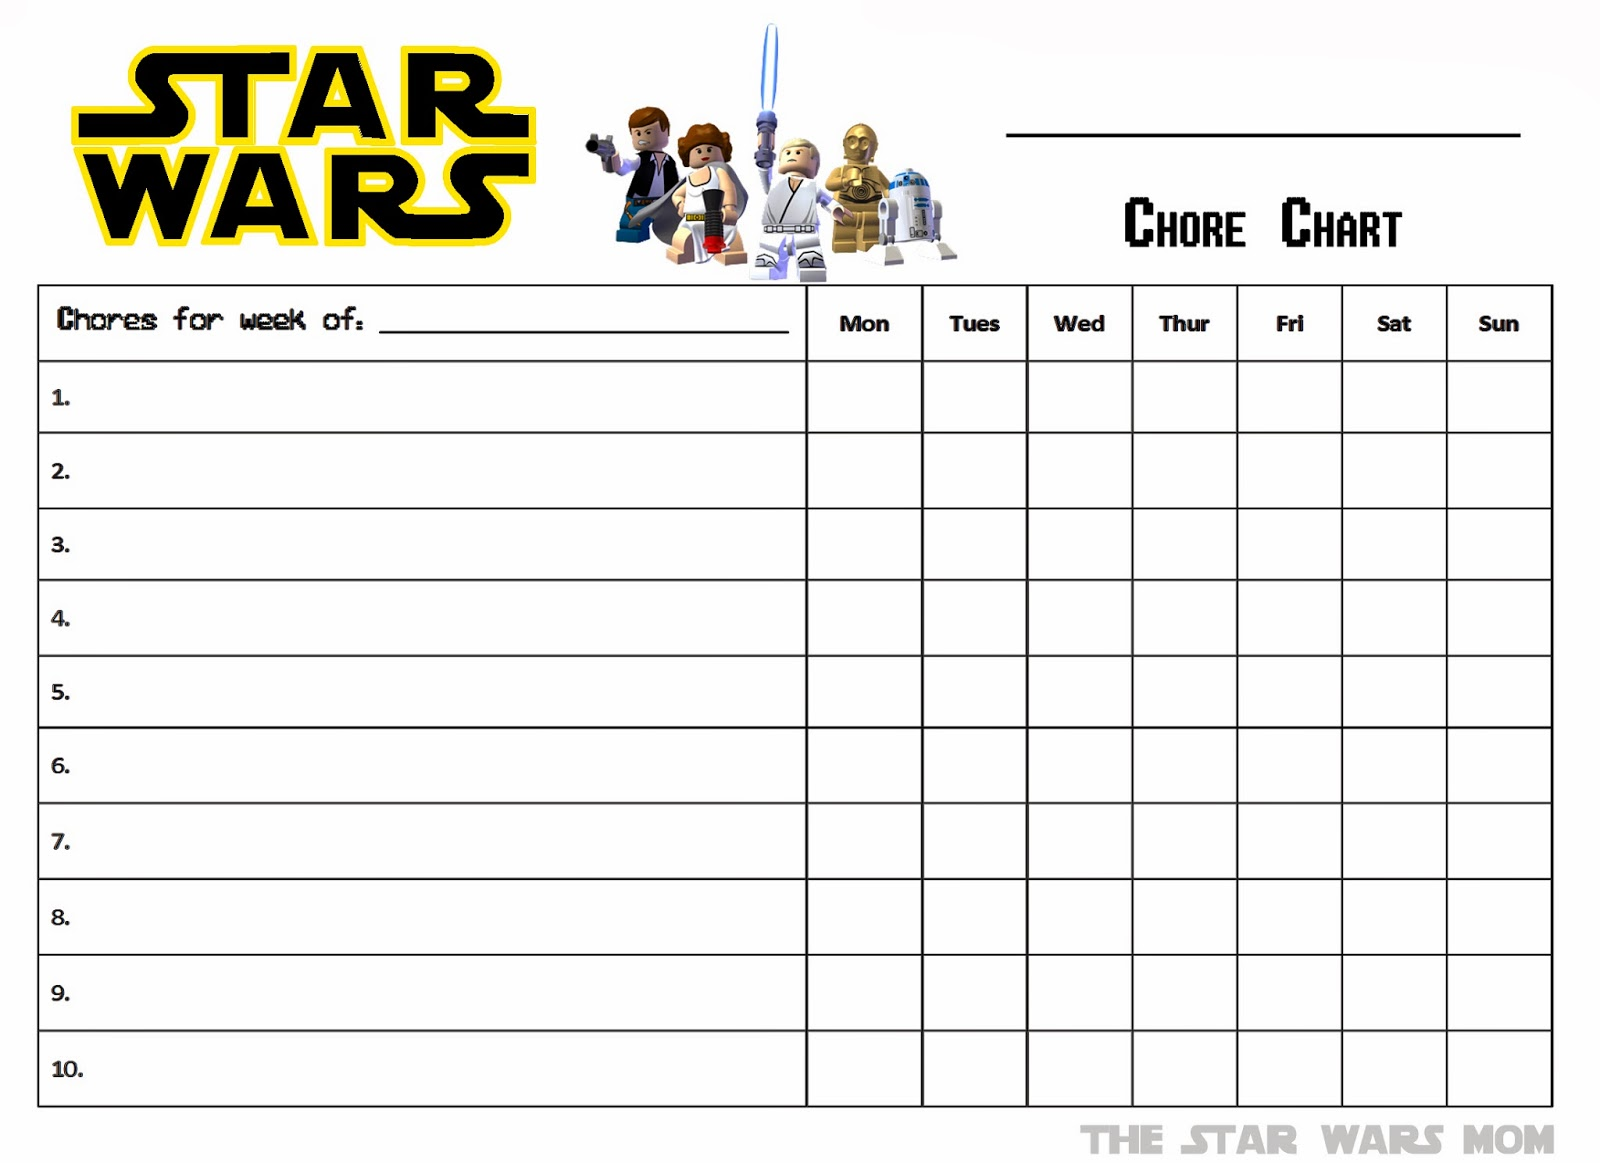 Lego star wars free printable chores chart the star for Chore list template for kids